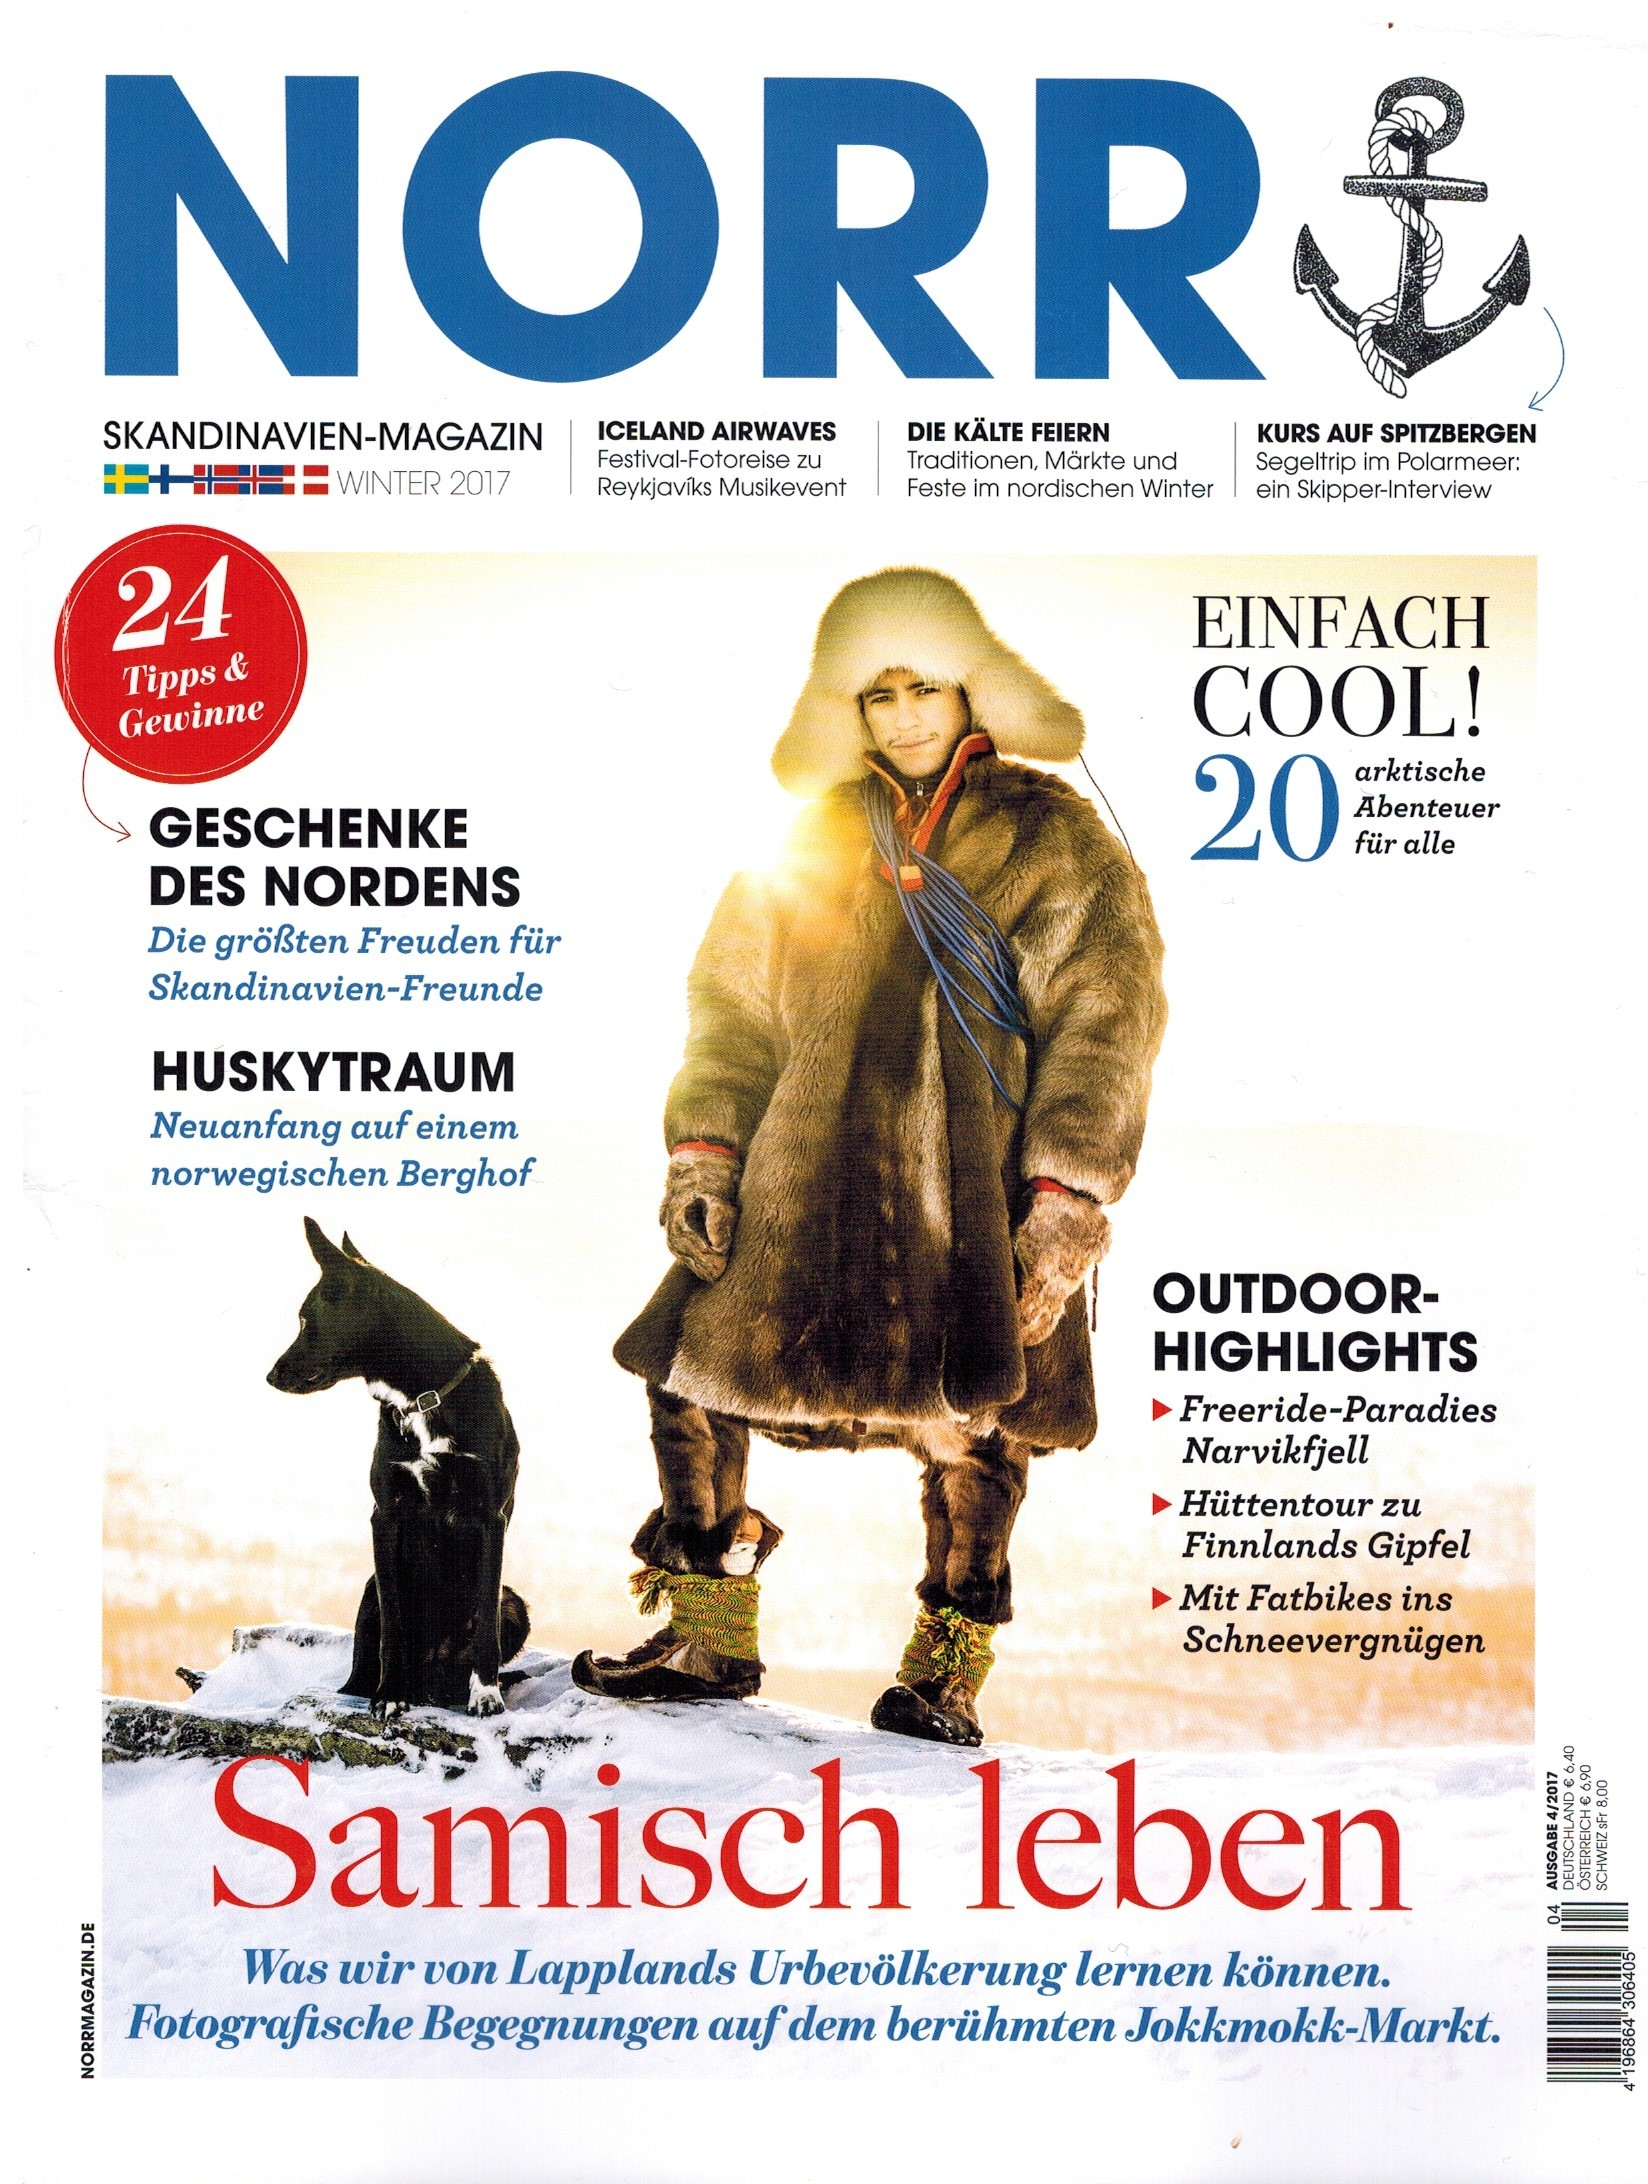 NORR 2017